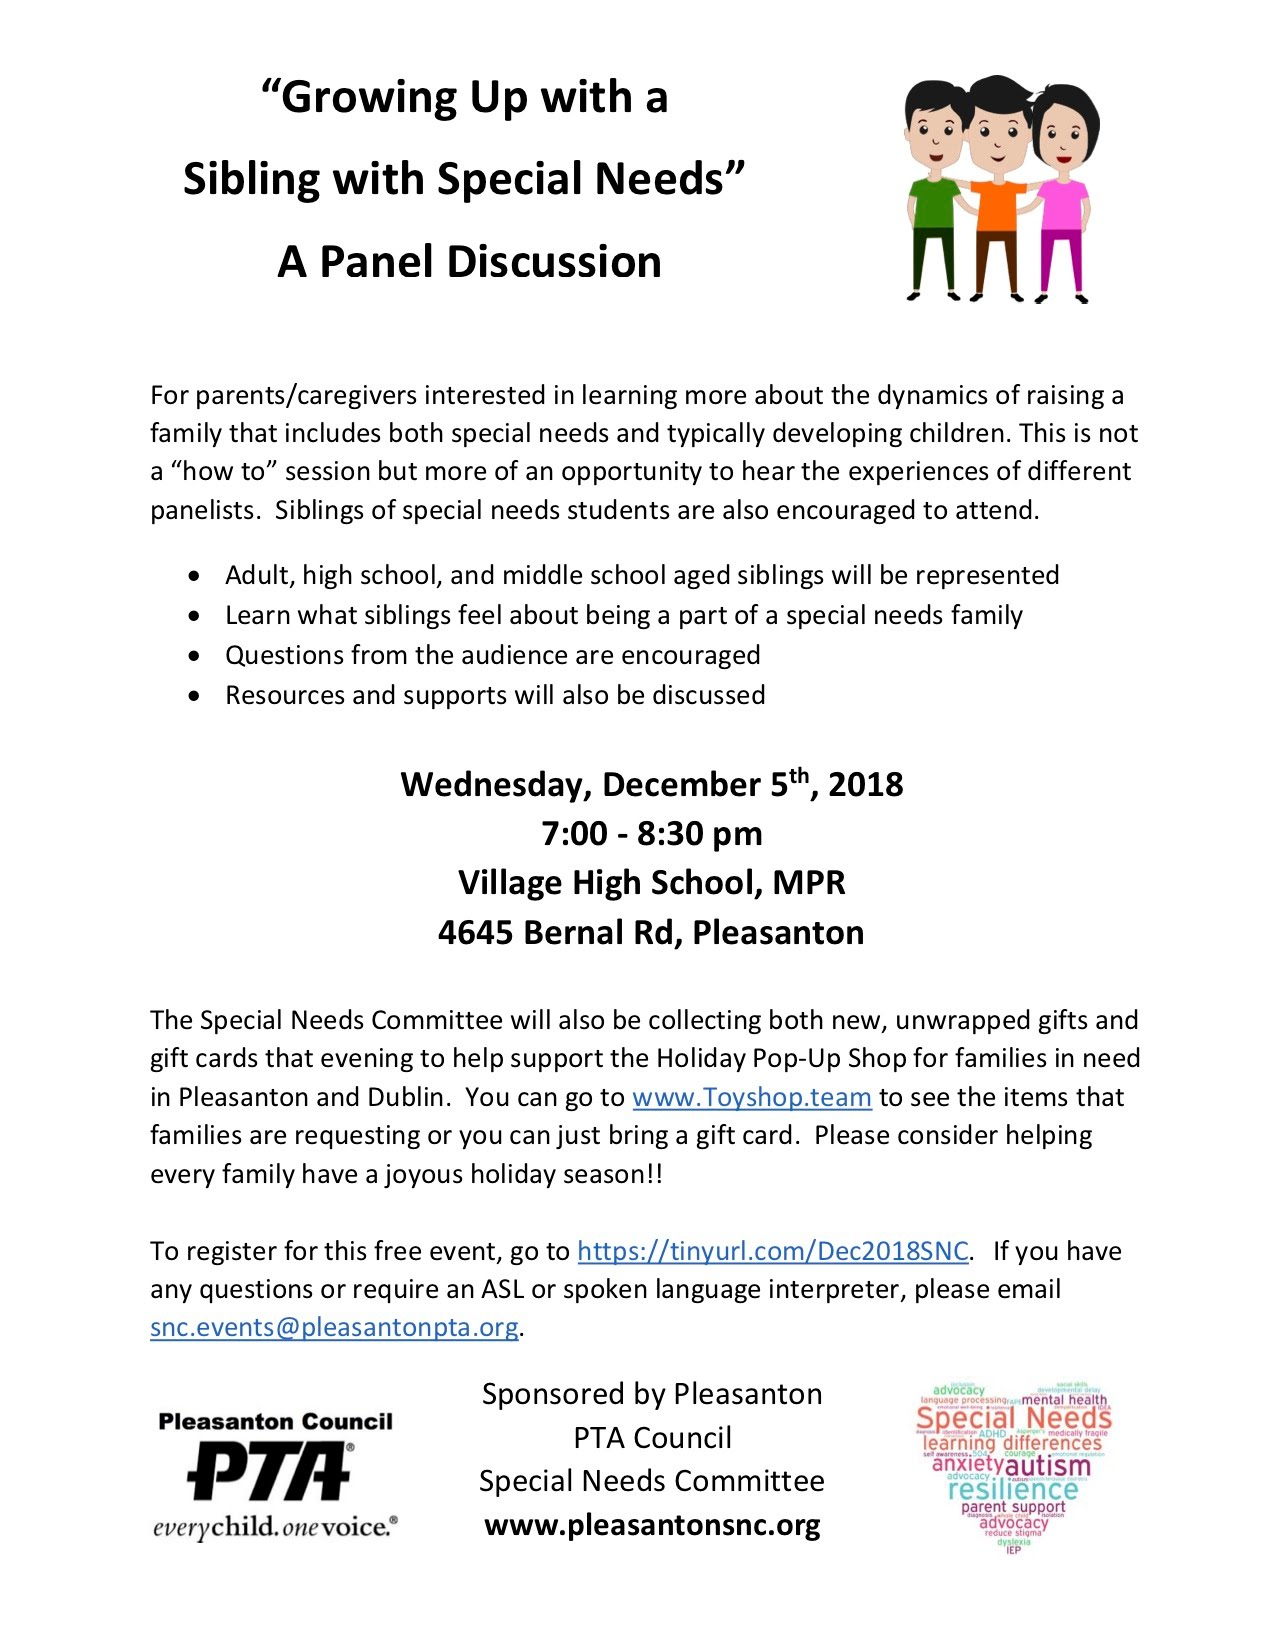 https://www.eventbrite.com/e/growing-up-with-a-special-needs-sibling-a-panel-discussion-tickets-52248973085?aff=ebdssbdestsearch